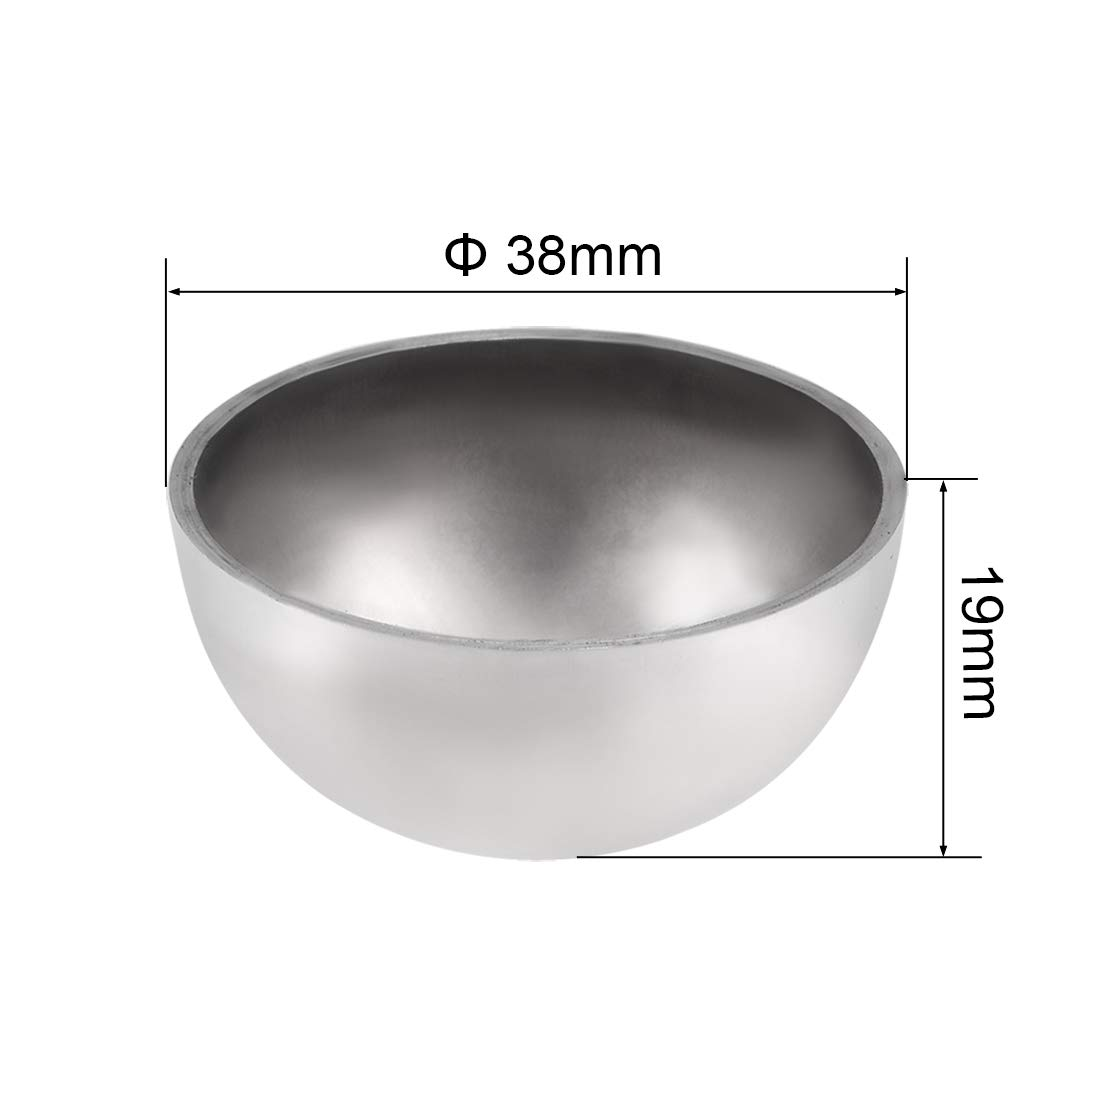 uxcell 38mm Dia 304 Stainless Steel Hollow Cap Ball Hemisphere Spheres for Handrail Stair Newel Post 2pcs